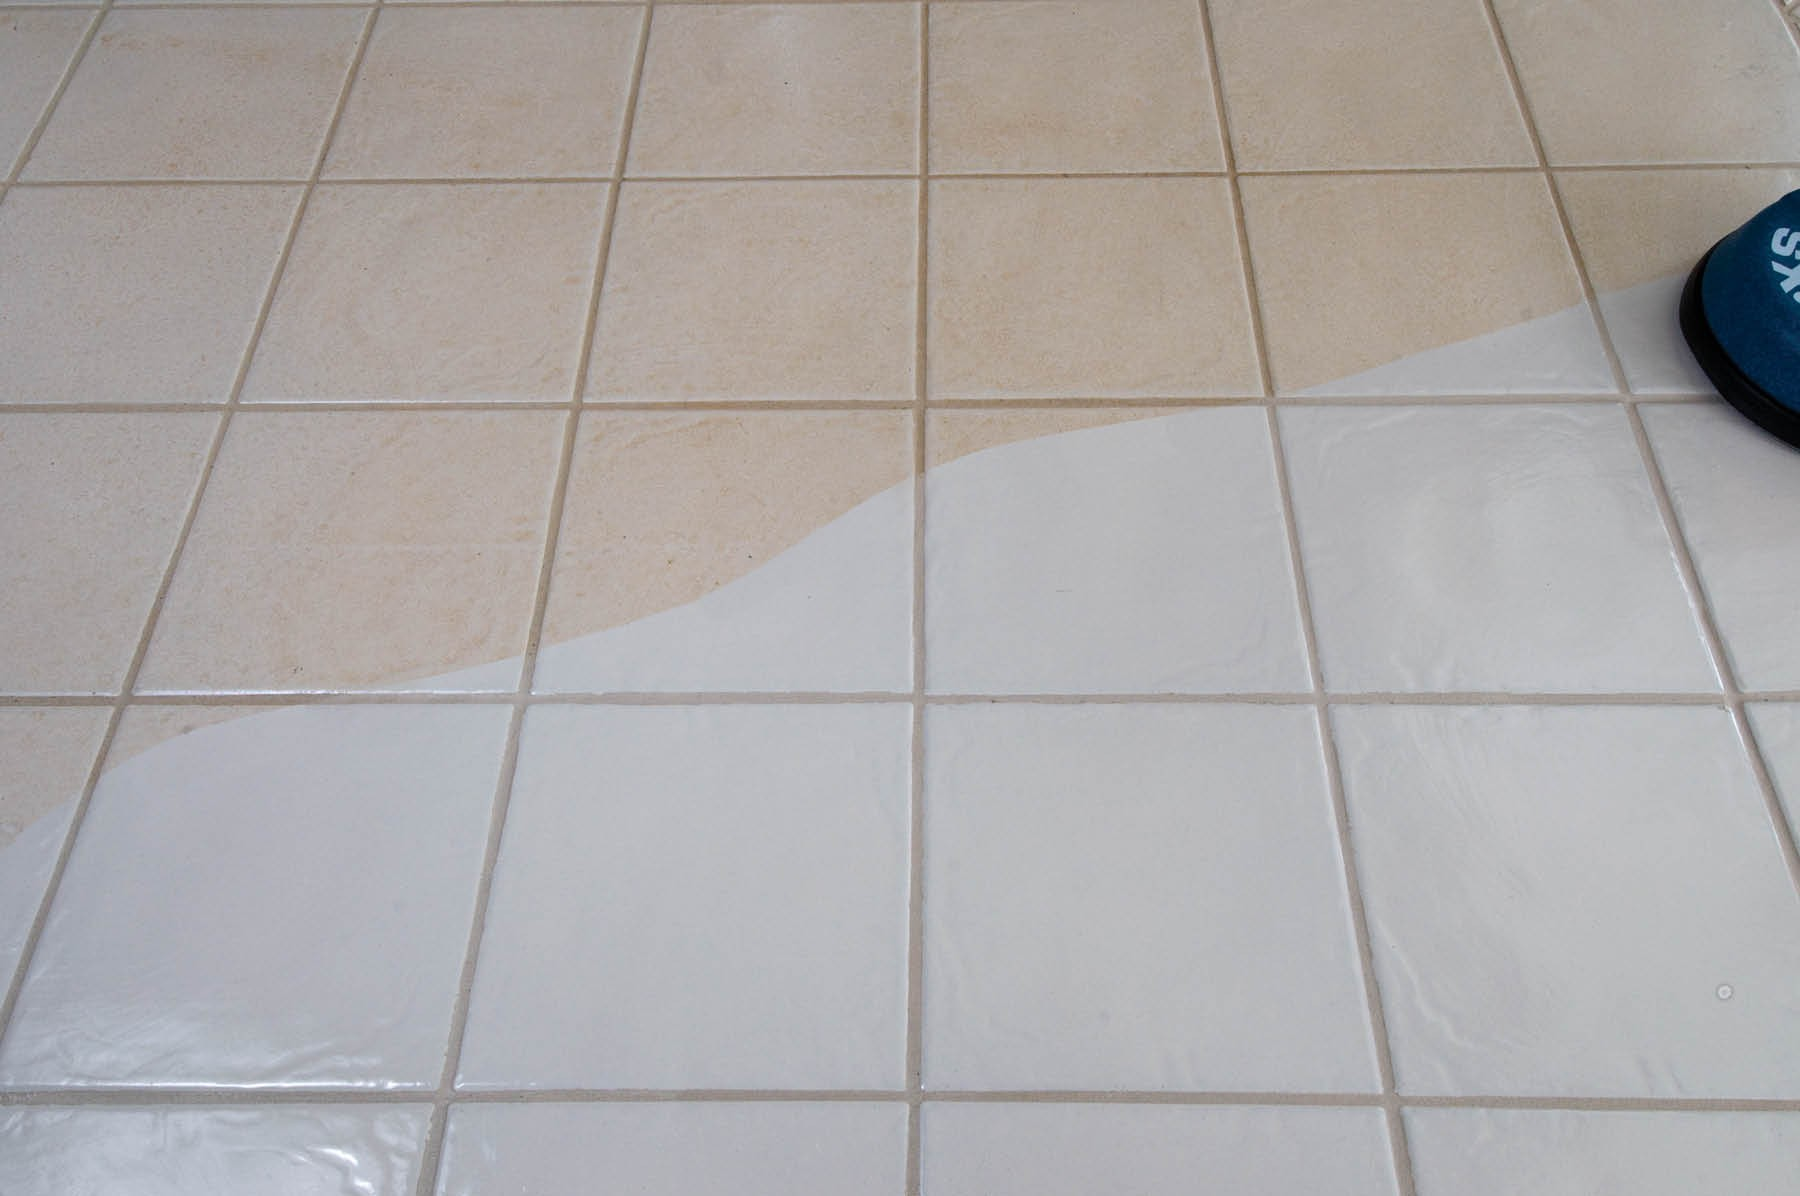 How To Clean Dirty Grout In Tile Floor